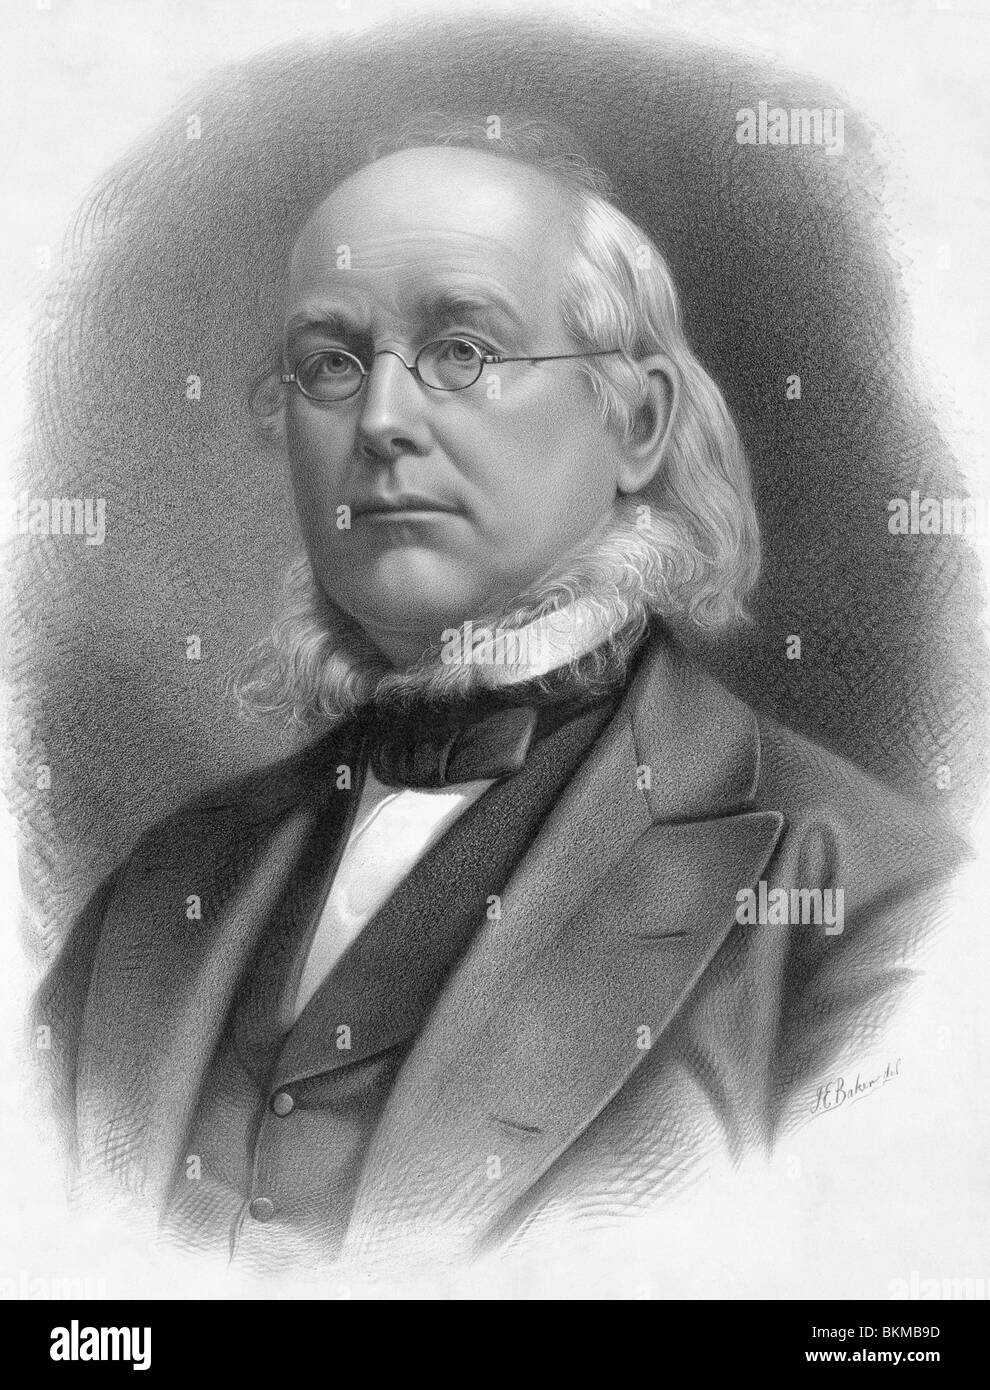 Vintage portrait print circa 1872 of American newspaper editor and politician Horace Greeley (1811 - 1872). - Stock Image